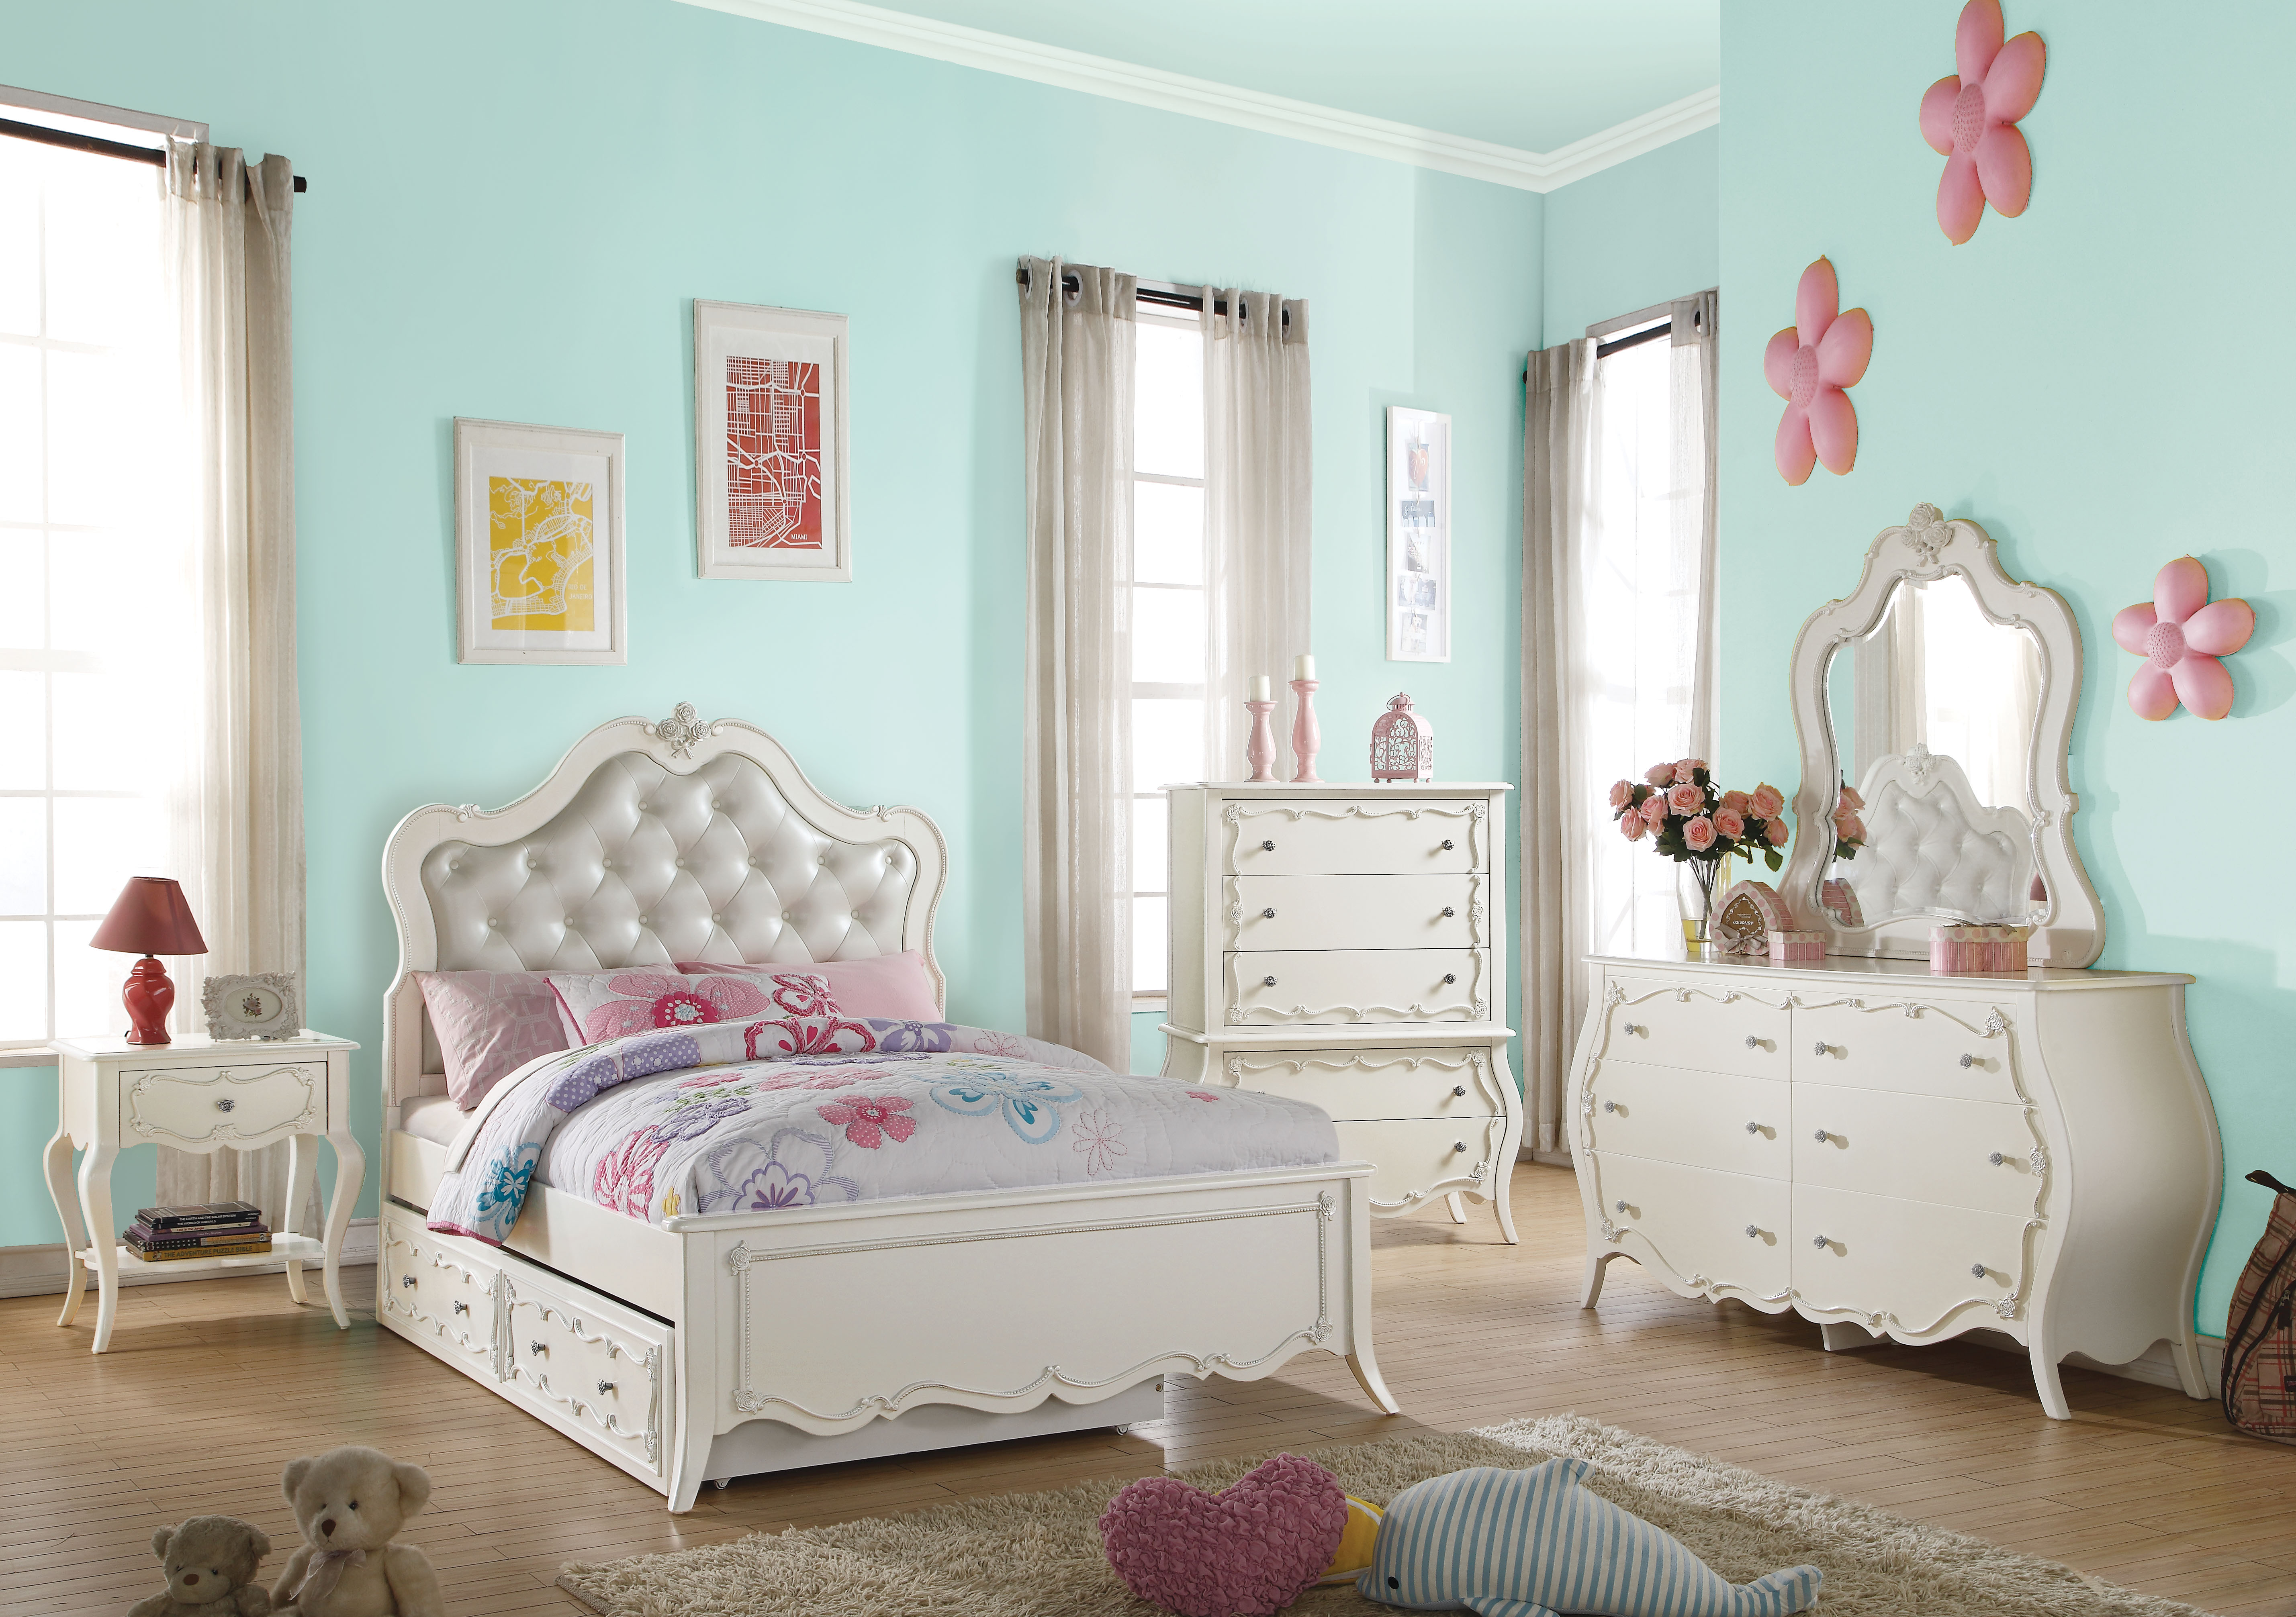 Royal Furniture Gifts Edalene Pearl White Twin Bed Wtrundle